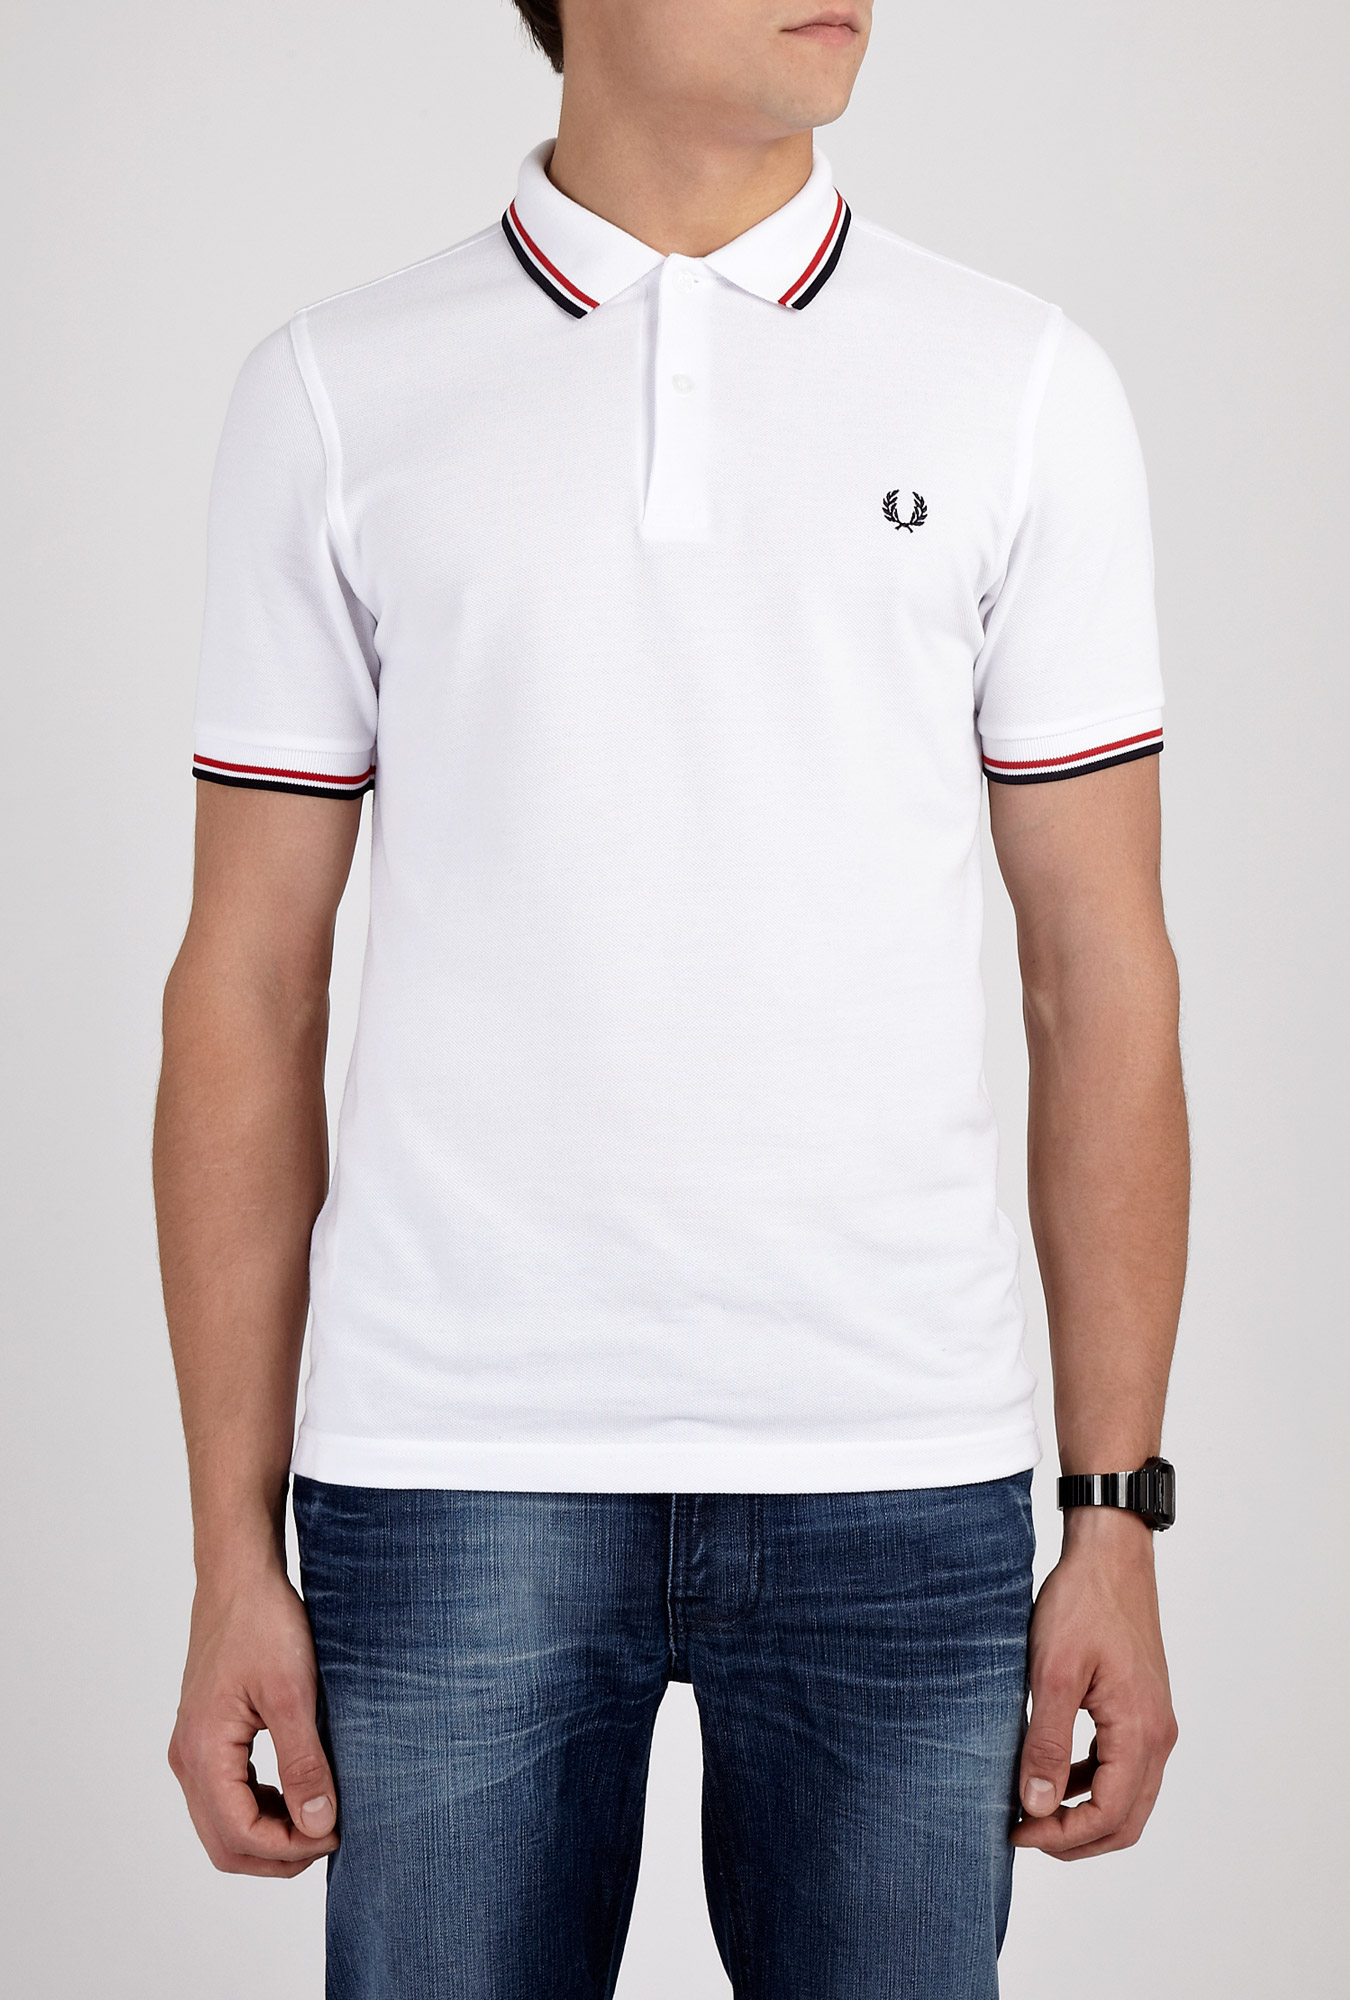 Ted Baker Mens Polo Shirts